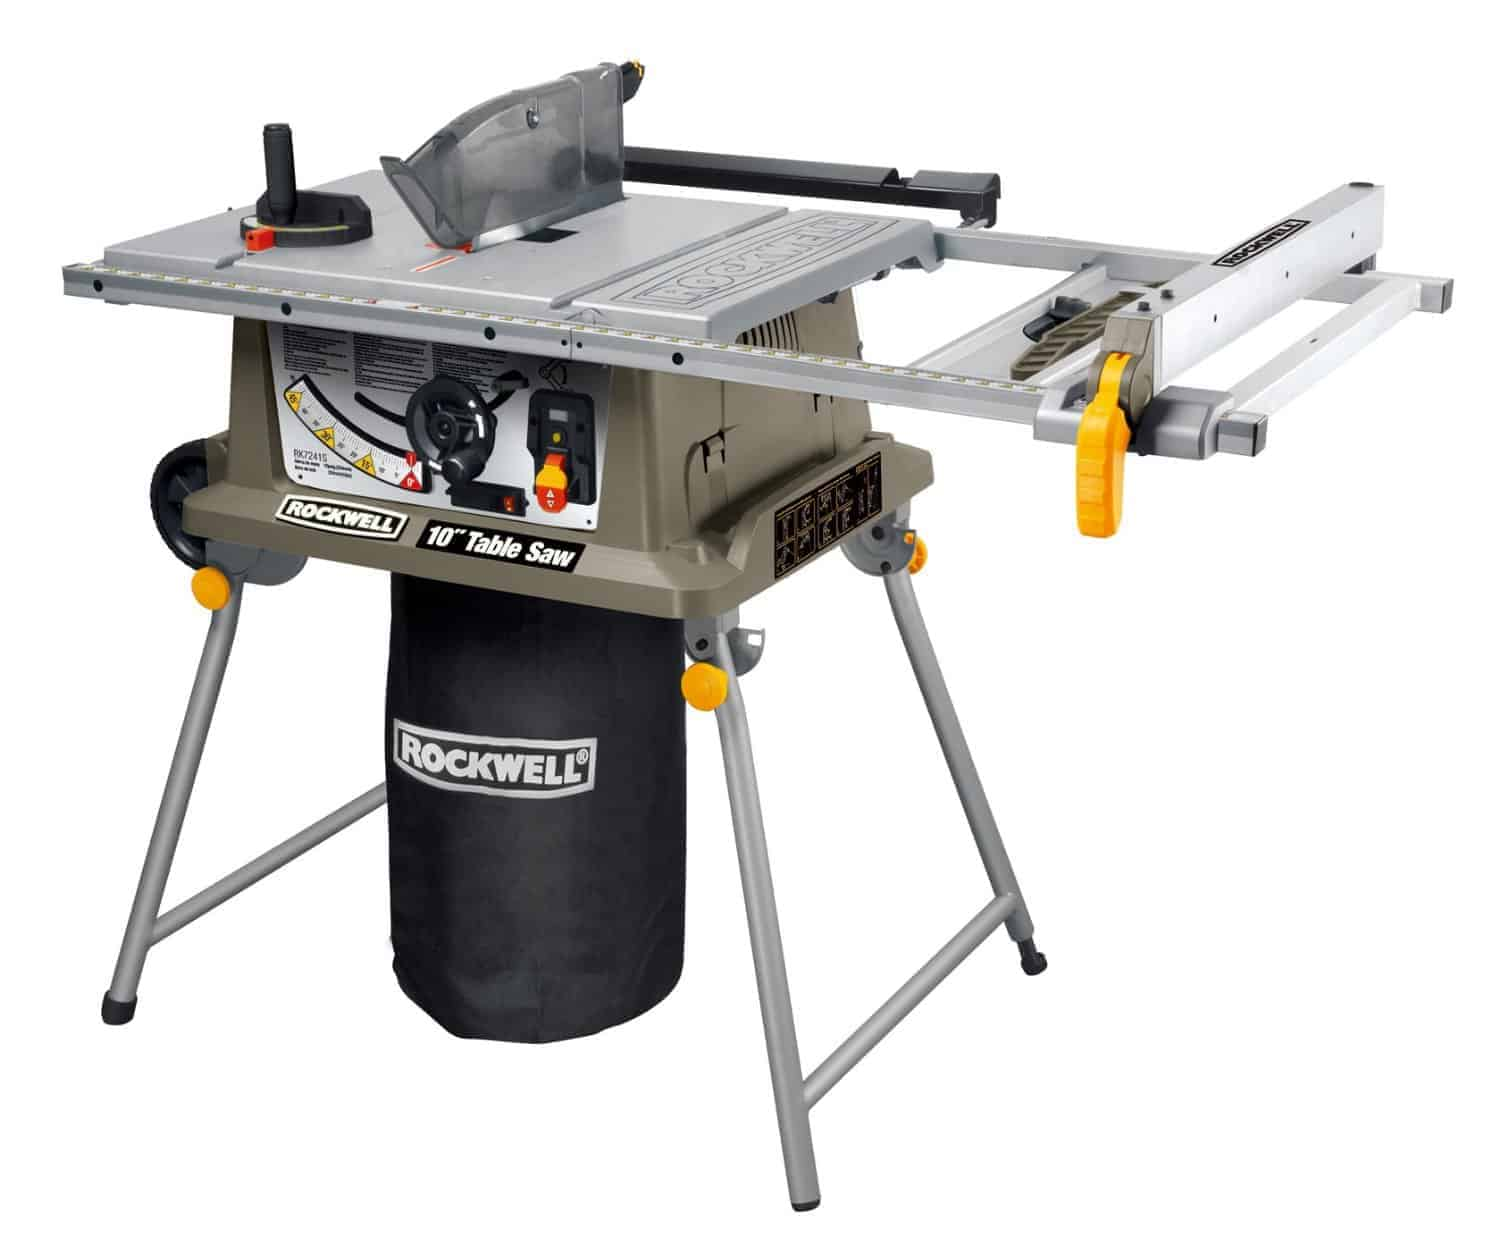 Rockwell Rk7241s 10 Inch Portable Table Saw Review